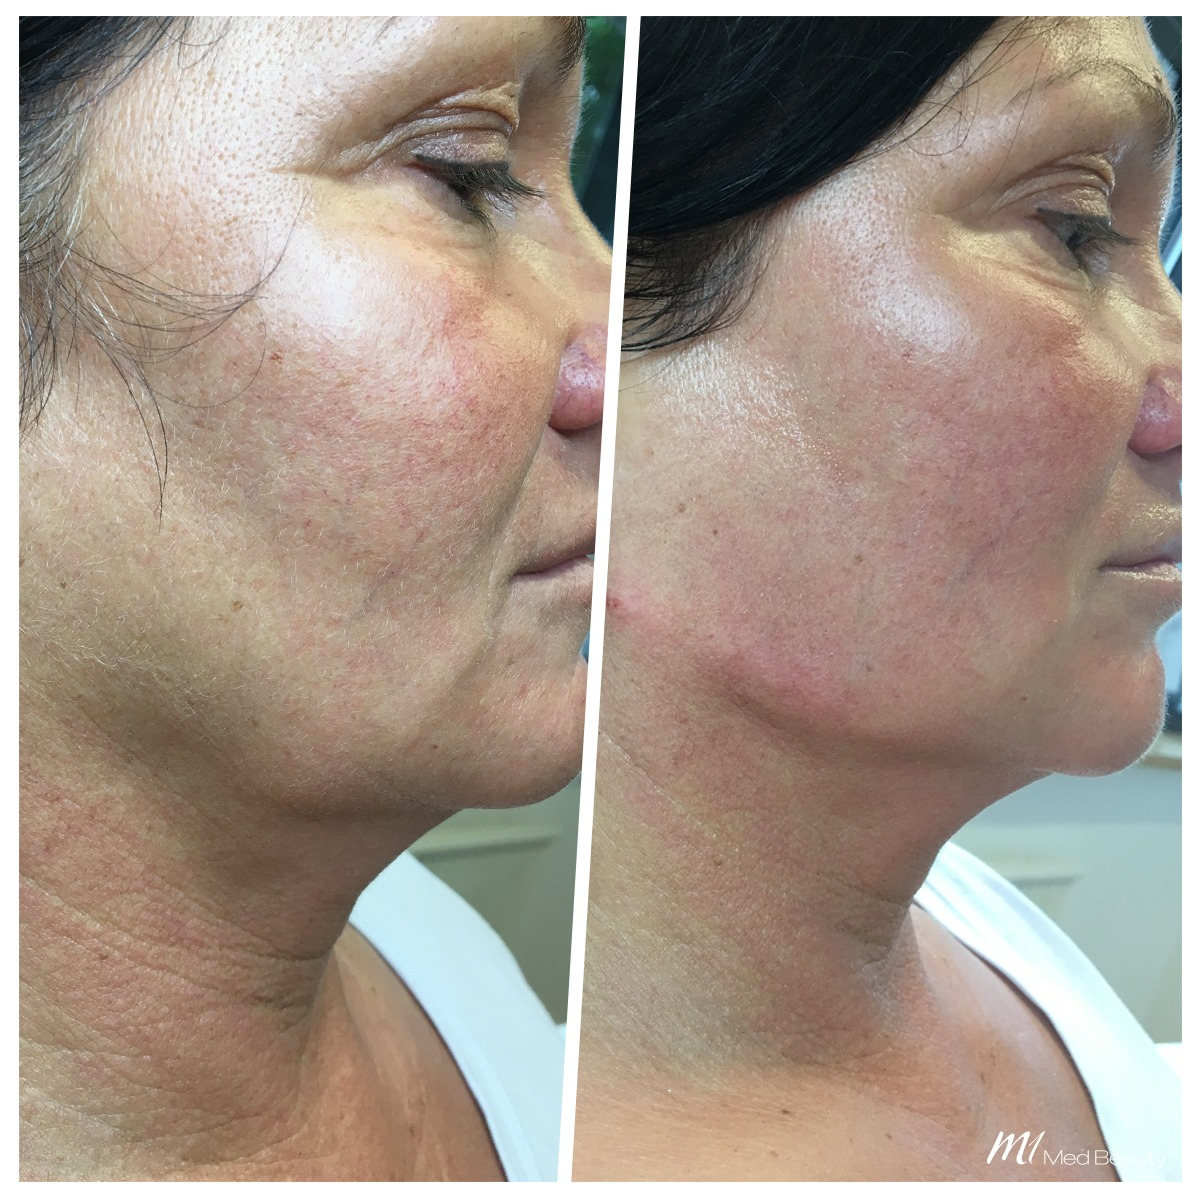 Jawline fillers at M1 Med Beauty before and after 05